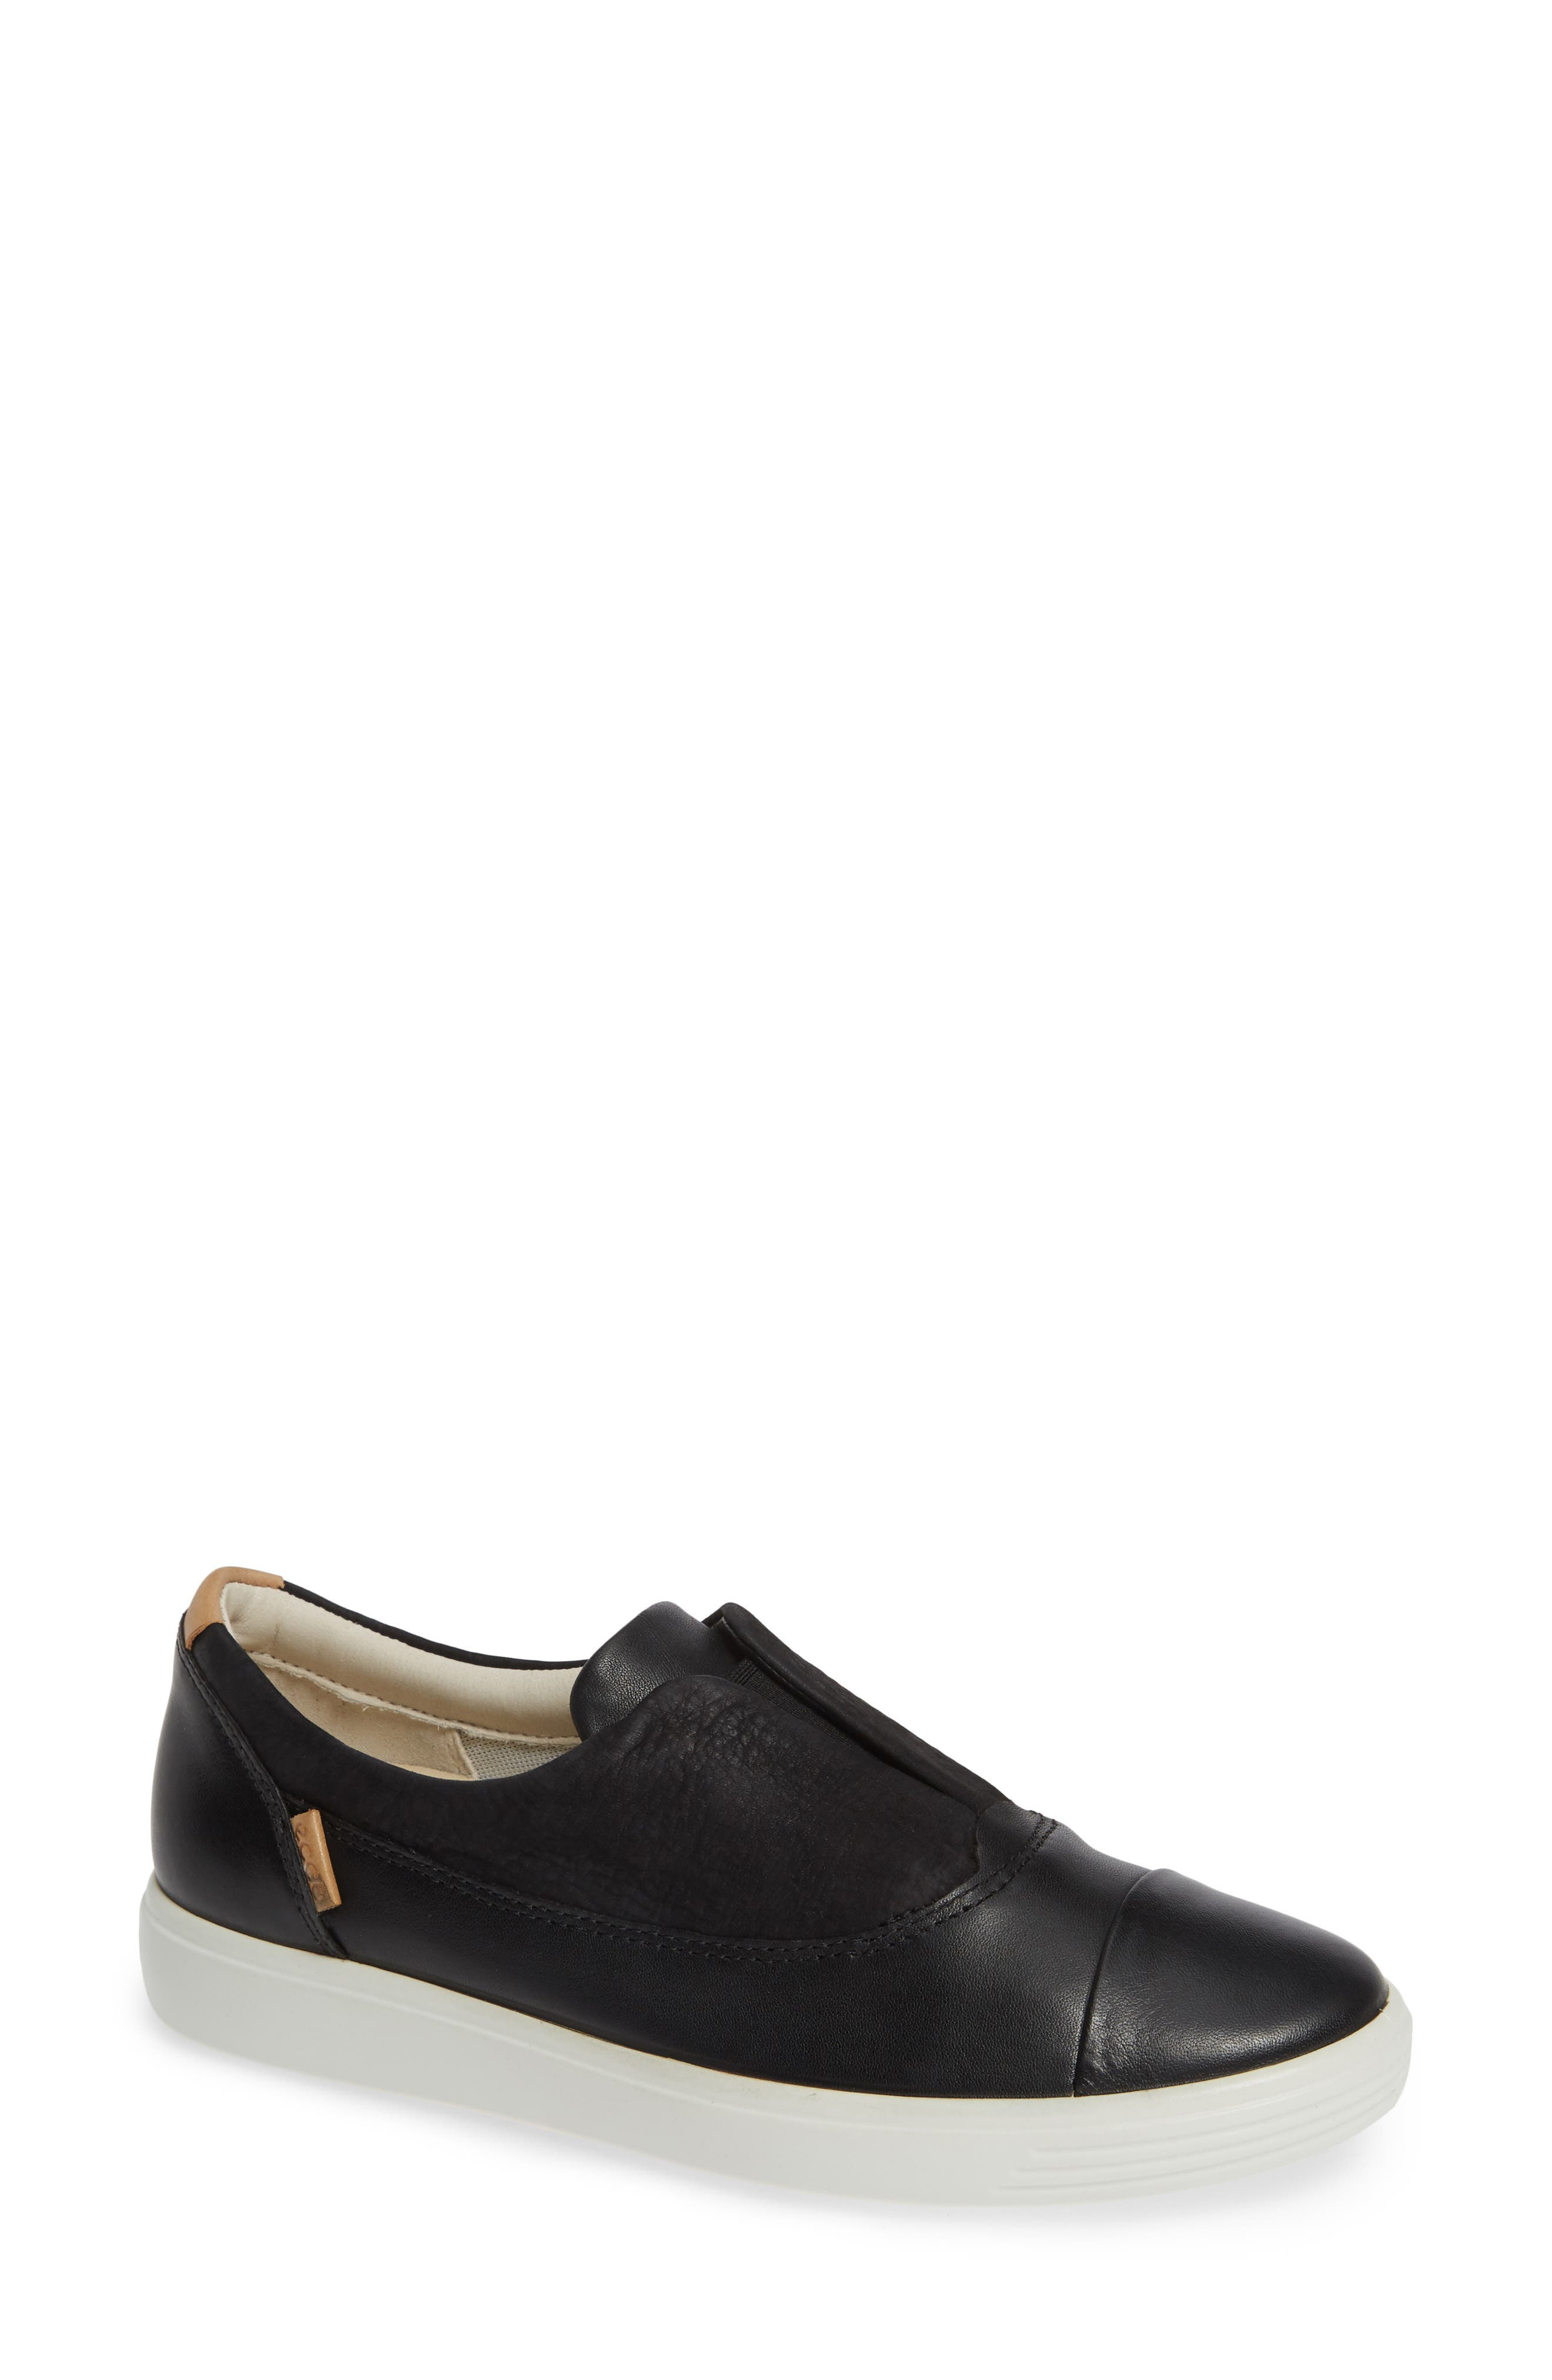 ECCO, Soft 7 II Slip-On Sneaker, Main thumbnail 1, color, BLACK LEATHER